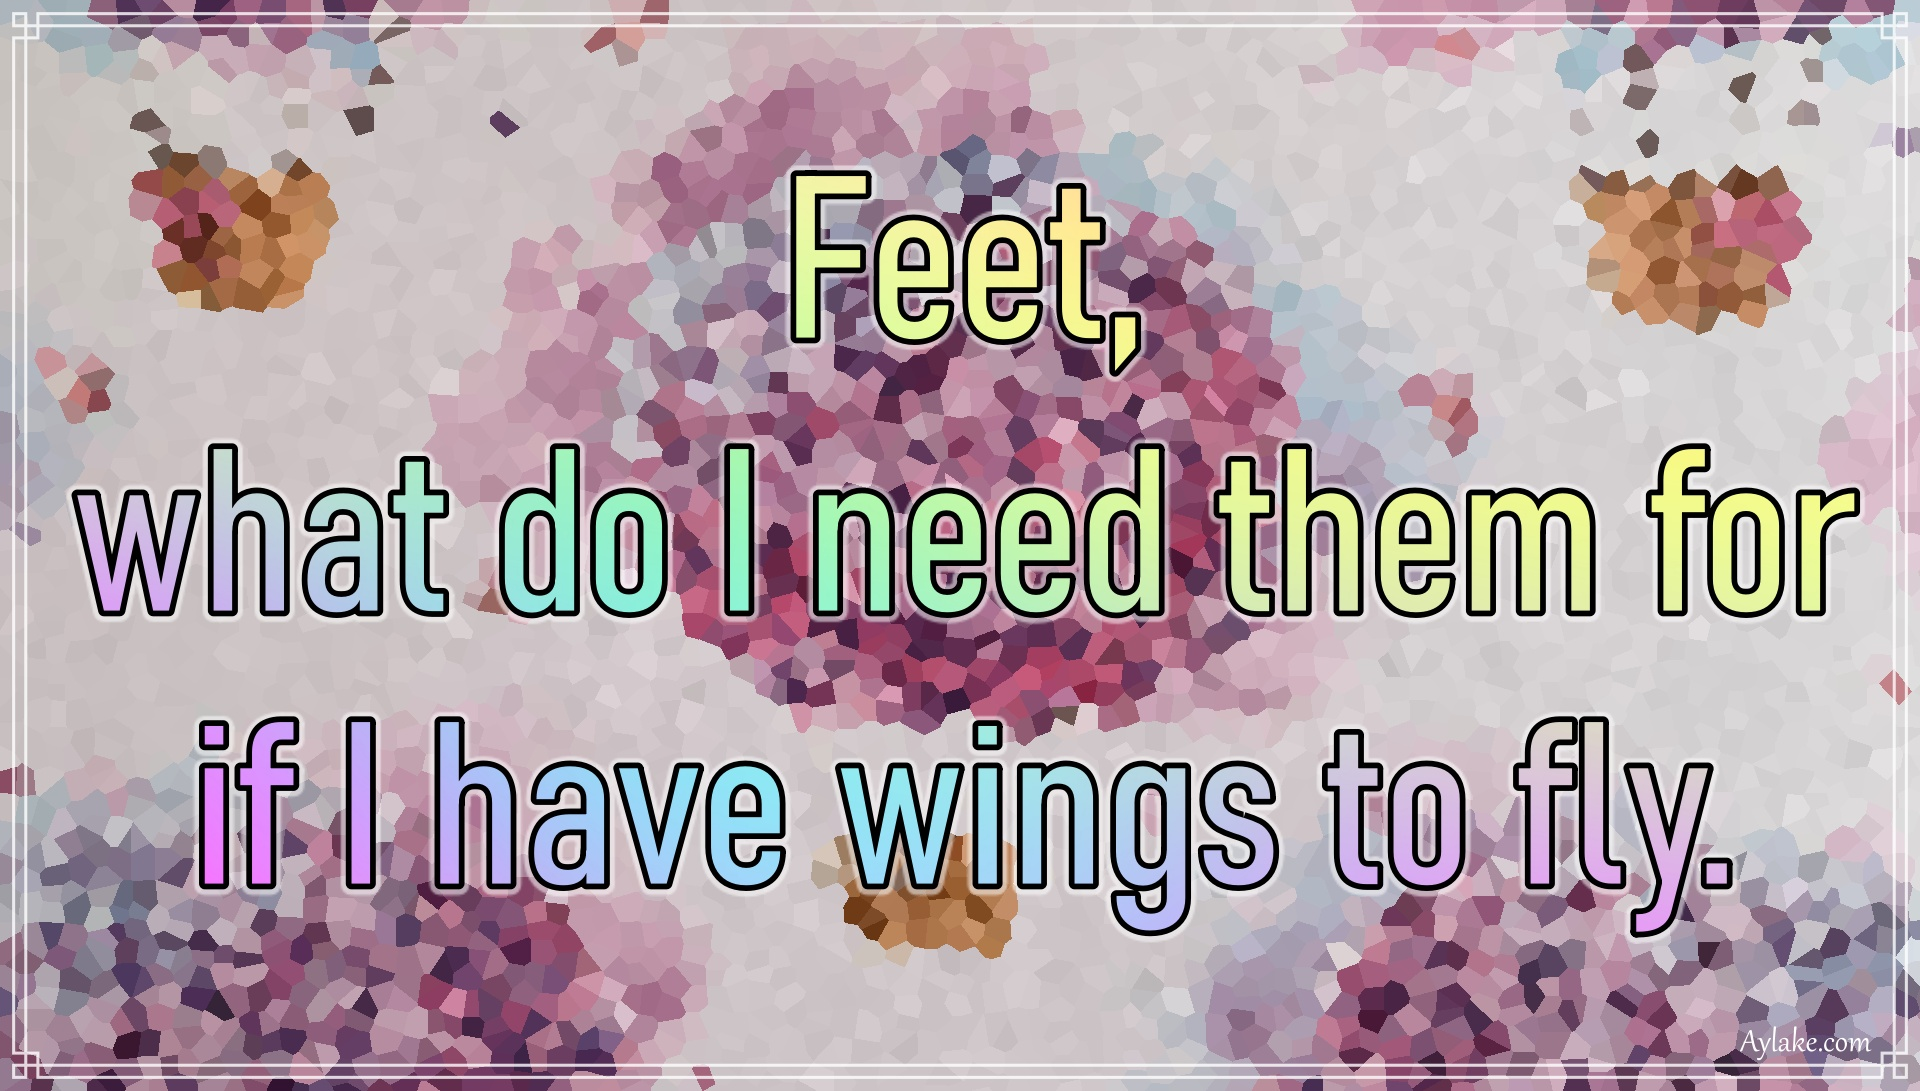 Inspirational quotes Feet what do I need them for if I have wings to fly Aylake